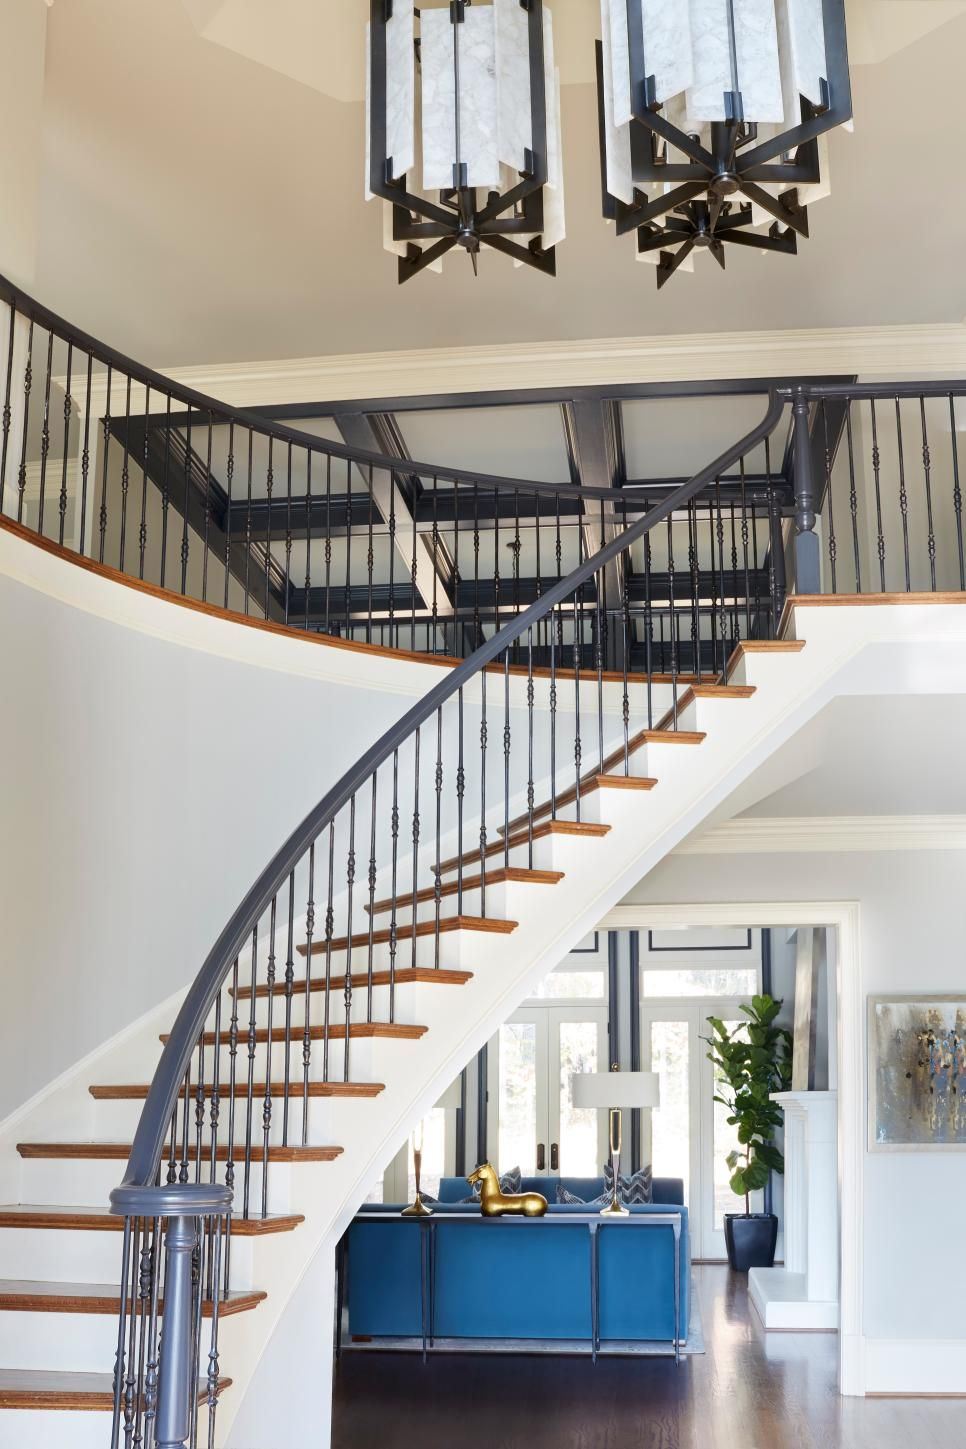 50 Stair Railing Ideas to Dress Up Your Entryway | HGTV ...